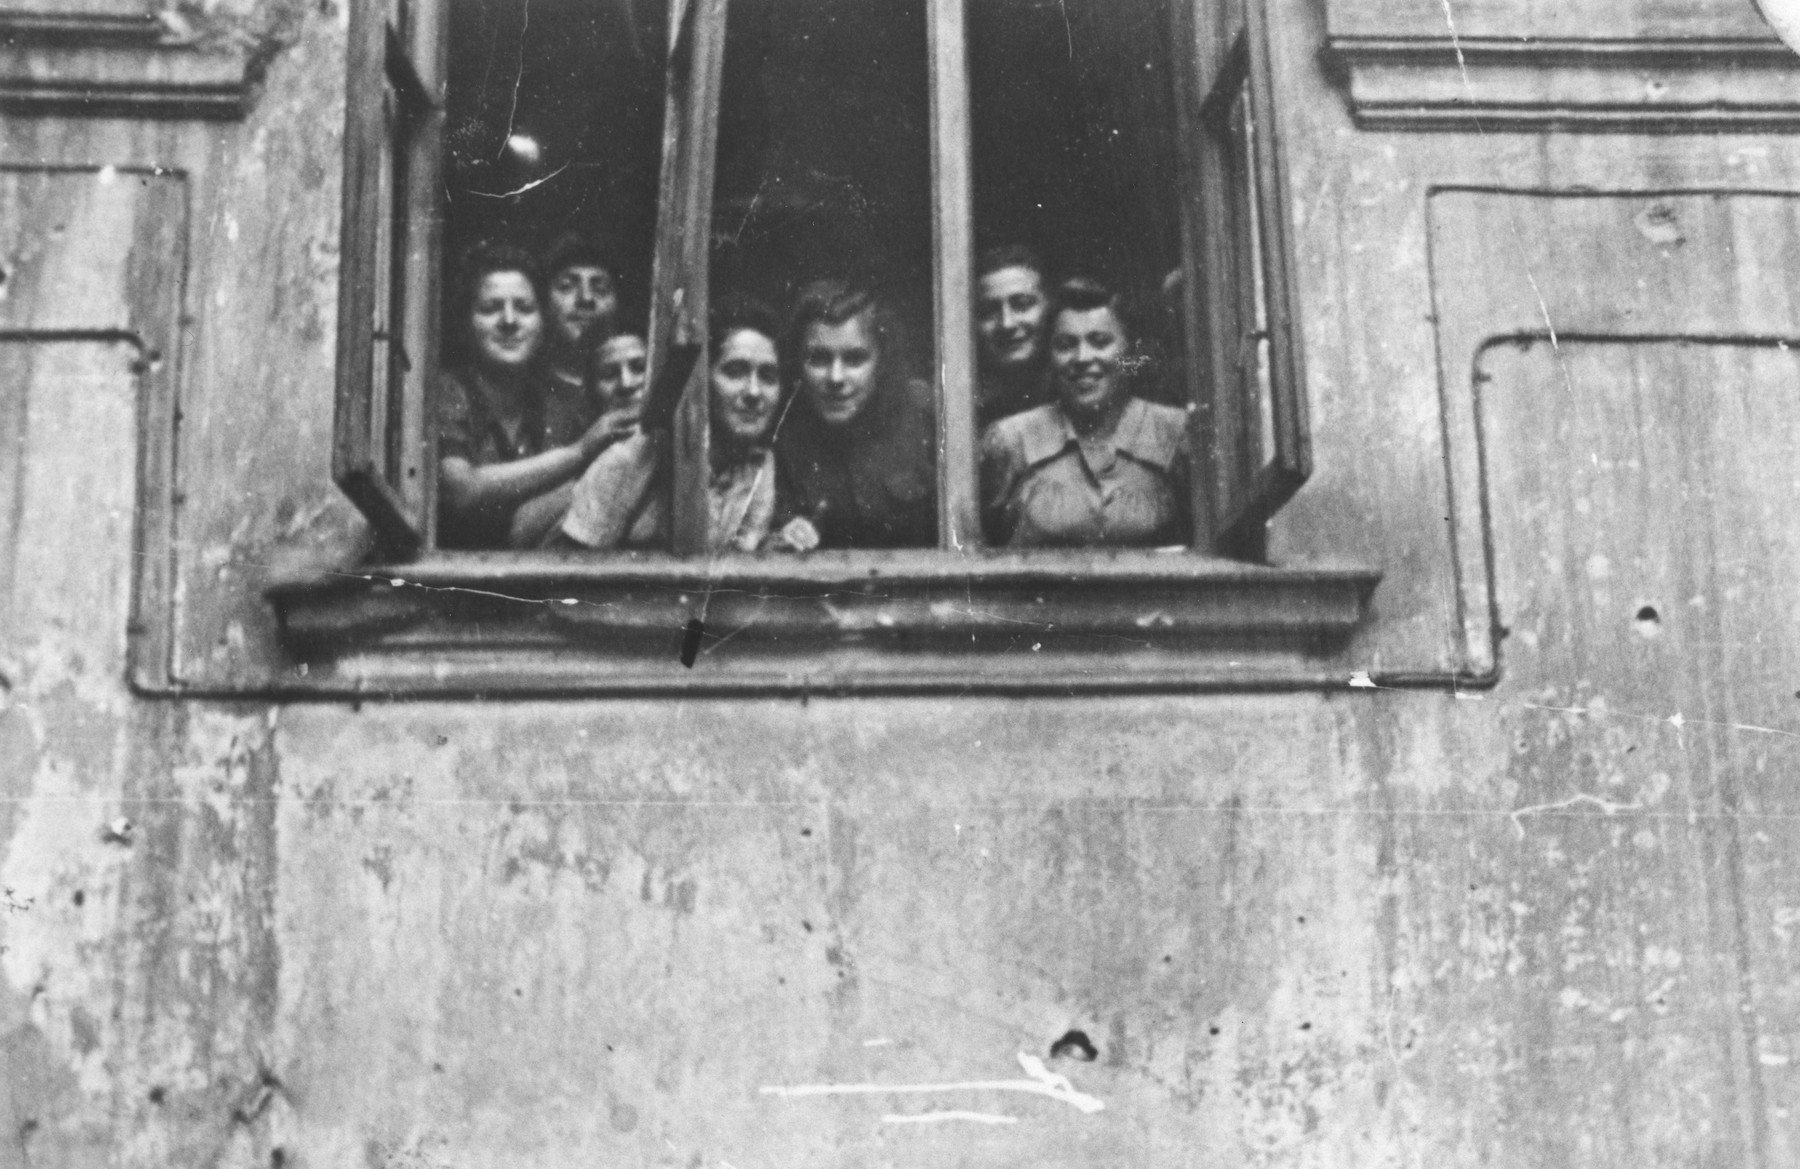 Members of the Kibbutz Ichud hachshara look out of the window of their Warsaw apartment.  Among those pictured are Sara Fiszman, Zosia, Hela Iwaniska, Hanka and Morris.